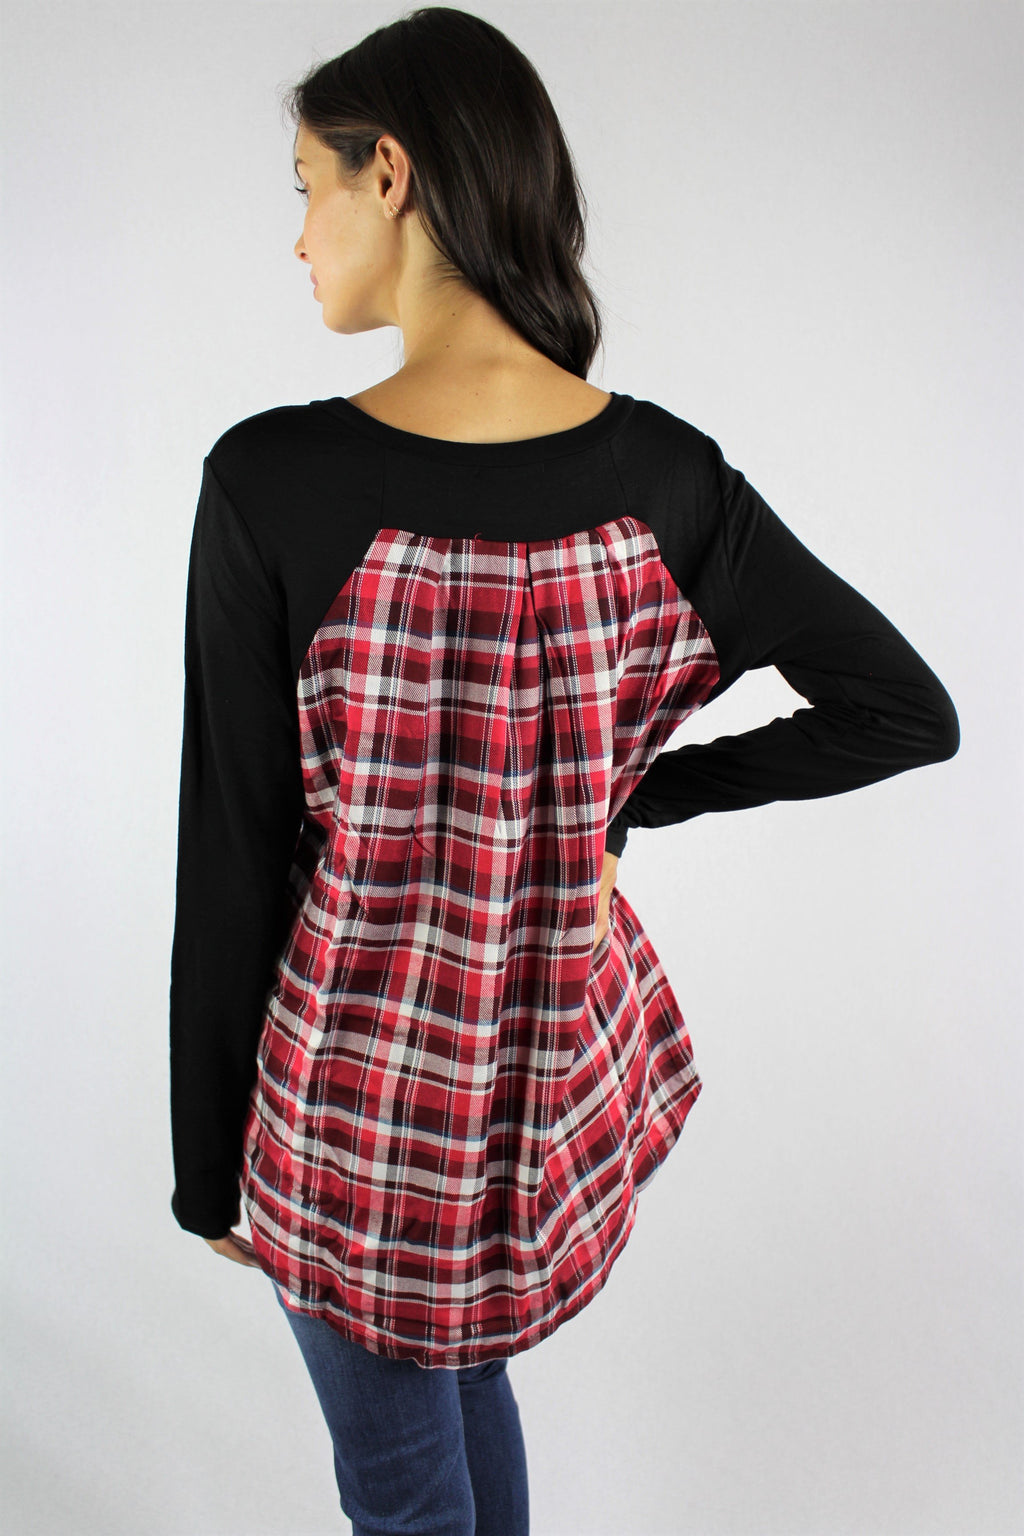 Women's Holiday Long Sleeve Top with Back Detail